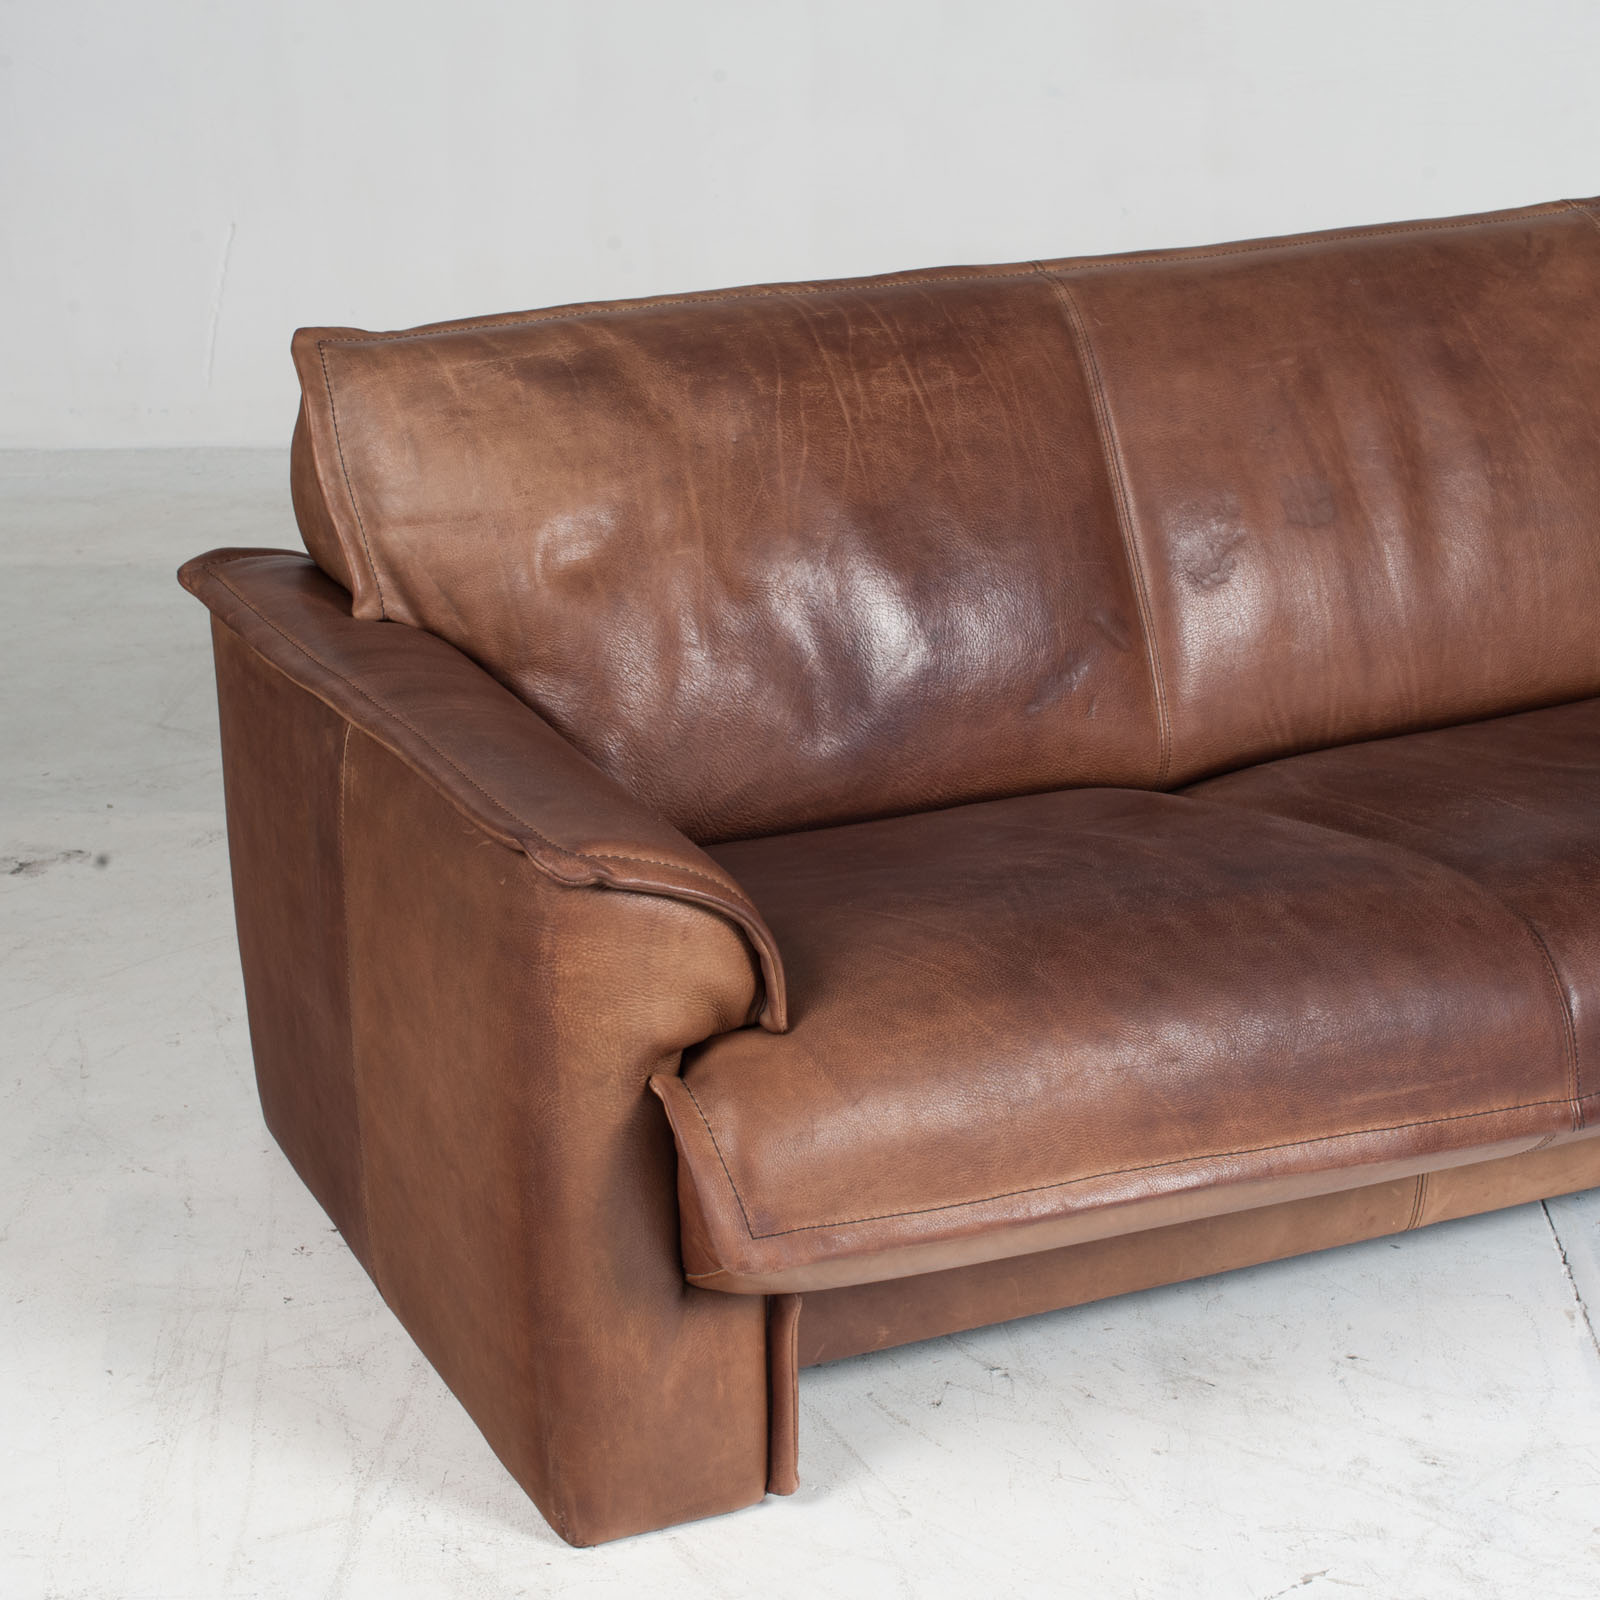 3 Seat Sofa By De Sede In Tan Neck Leather 1960s Denmark 03